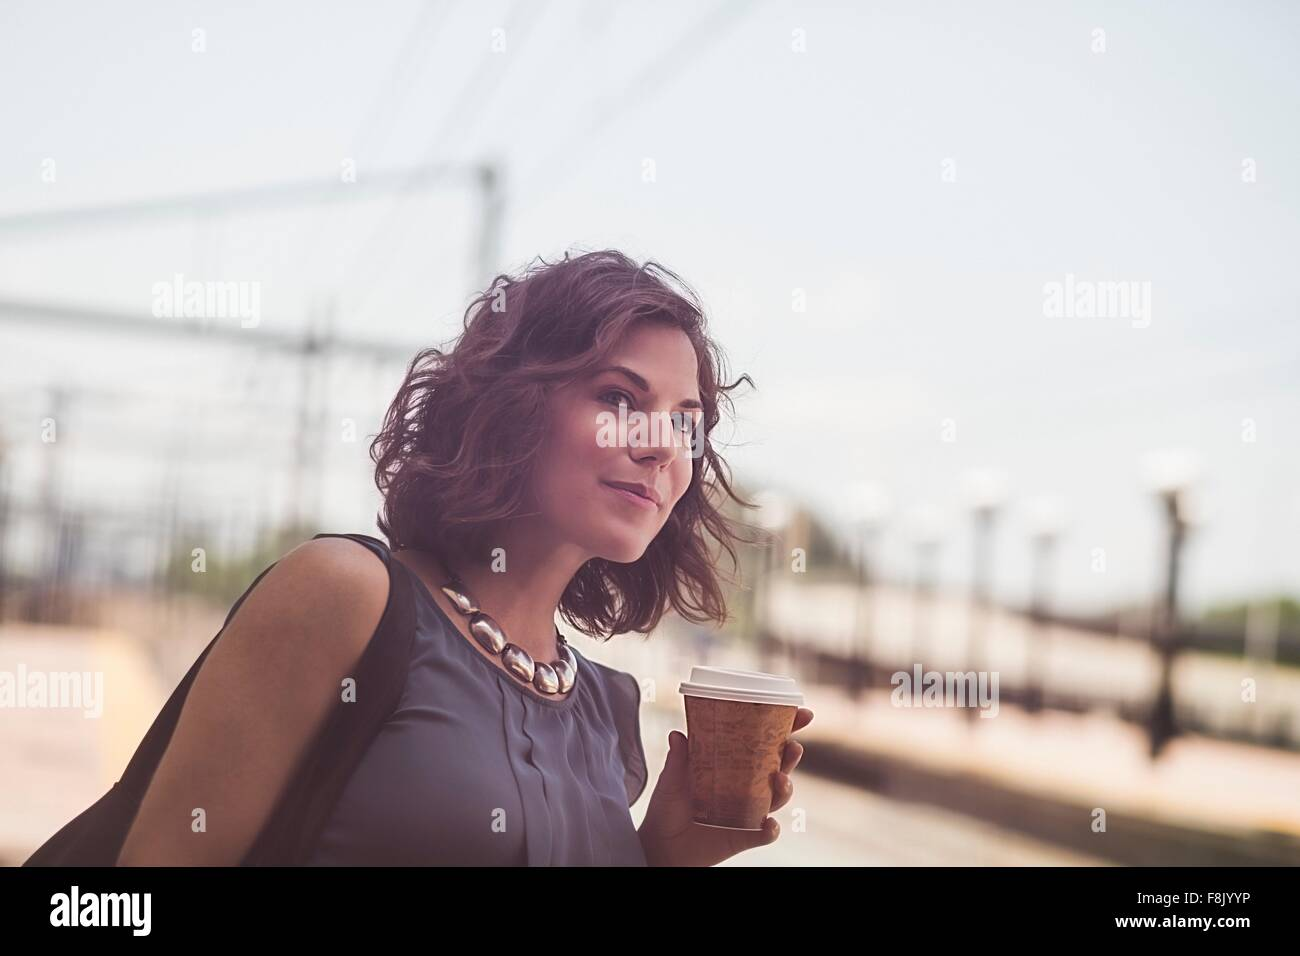 Mid adult woman en attente à la gare, holding Coffee cup Photo Stock